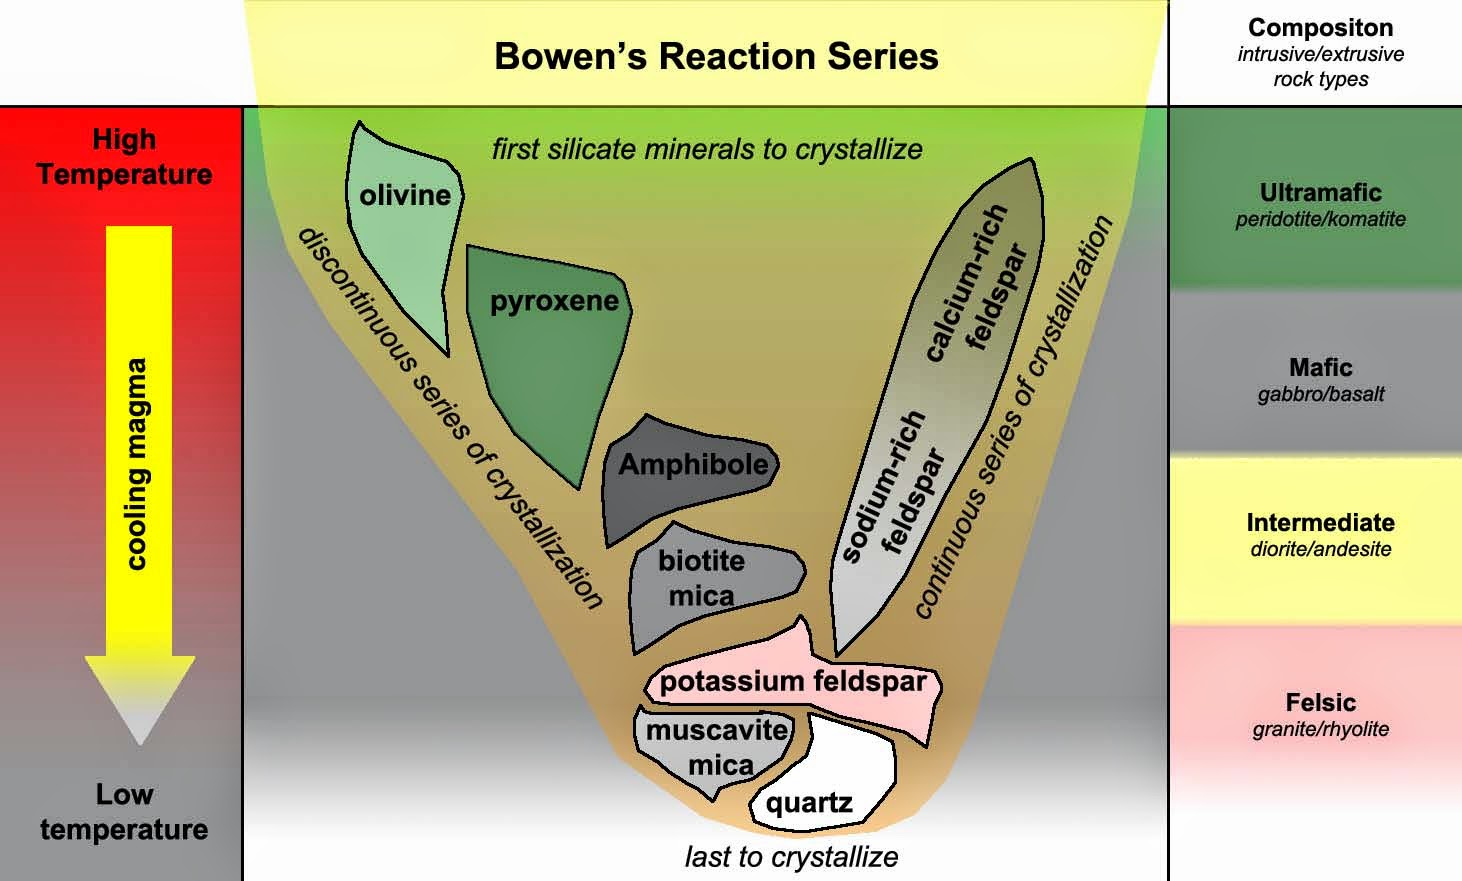 How Does Bowen's Reaction Series Relate to the Classification of Igneous Rock?